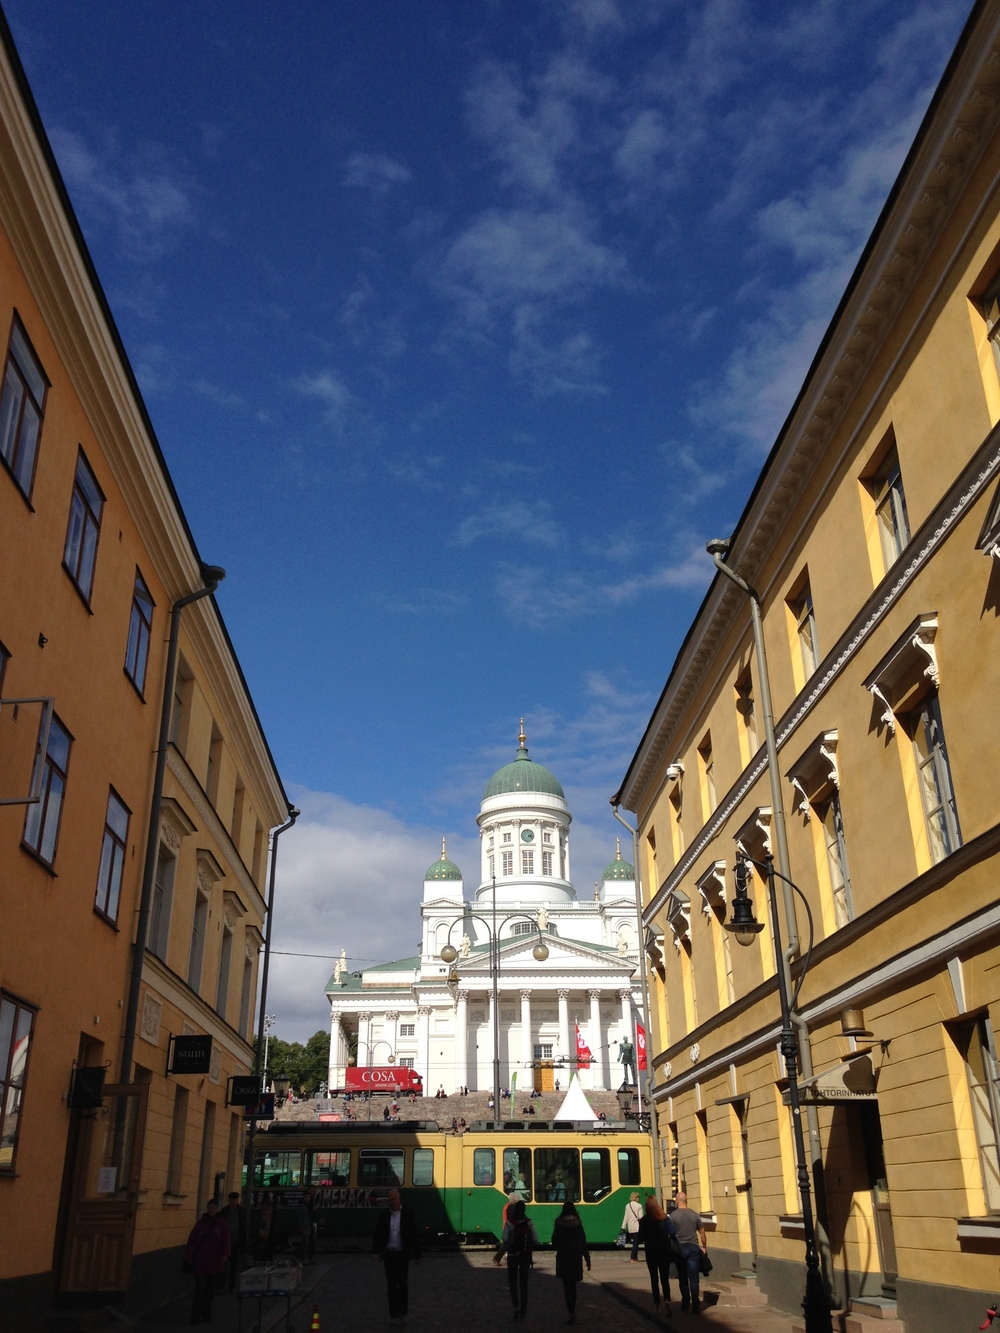 Alley leading to Helsinki Cathedral. All roads seemed to lead to the church.